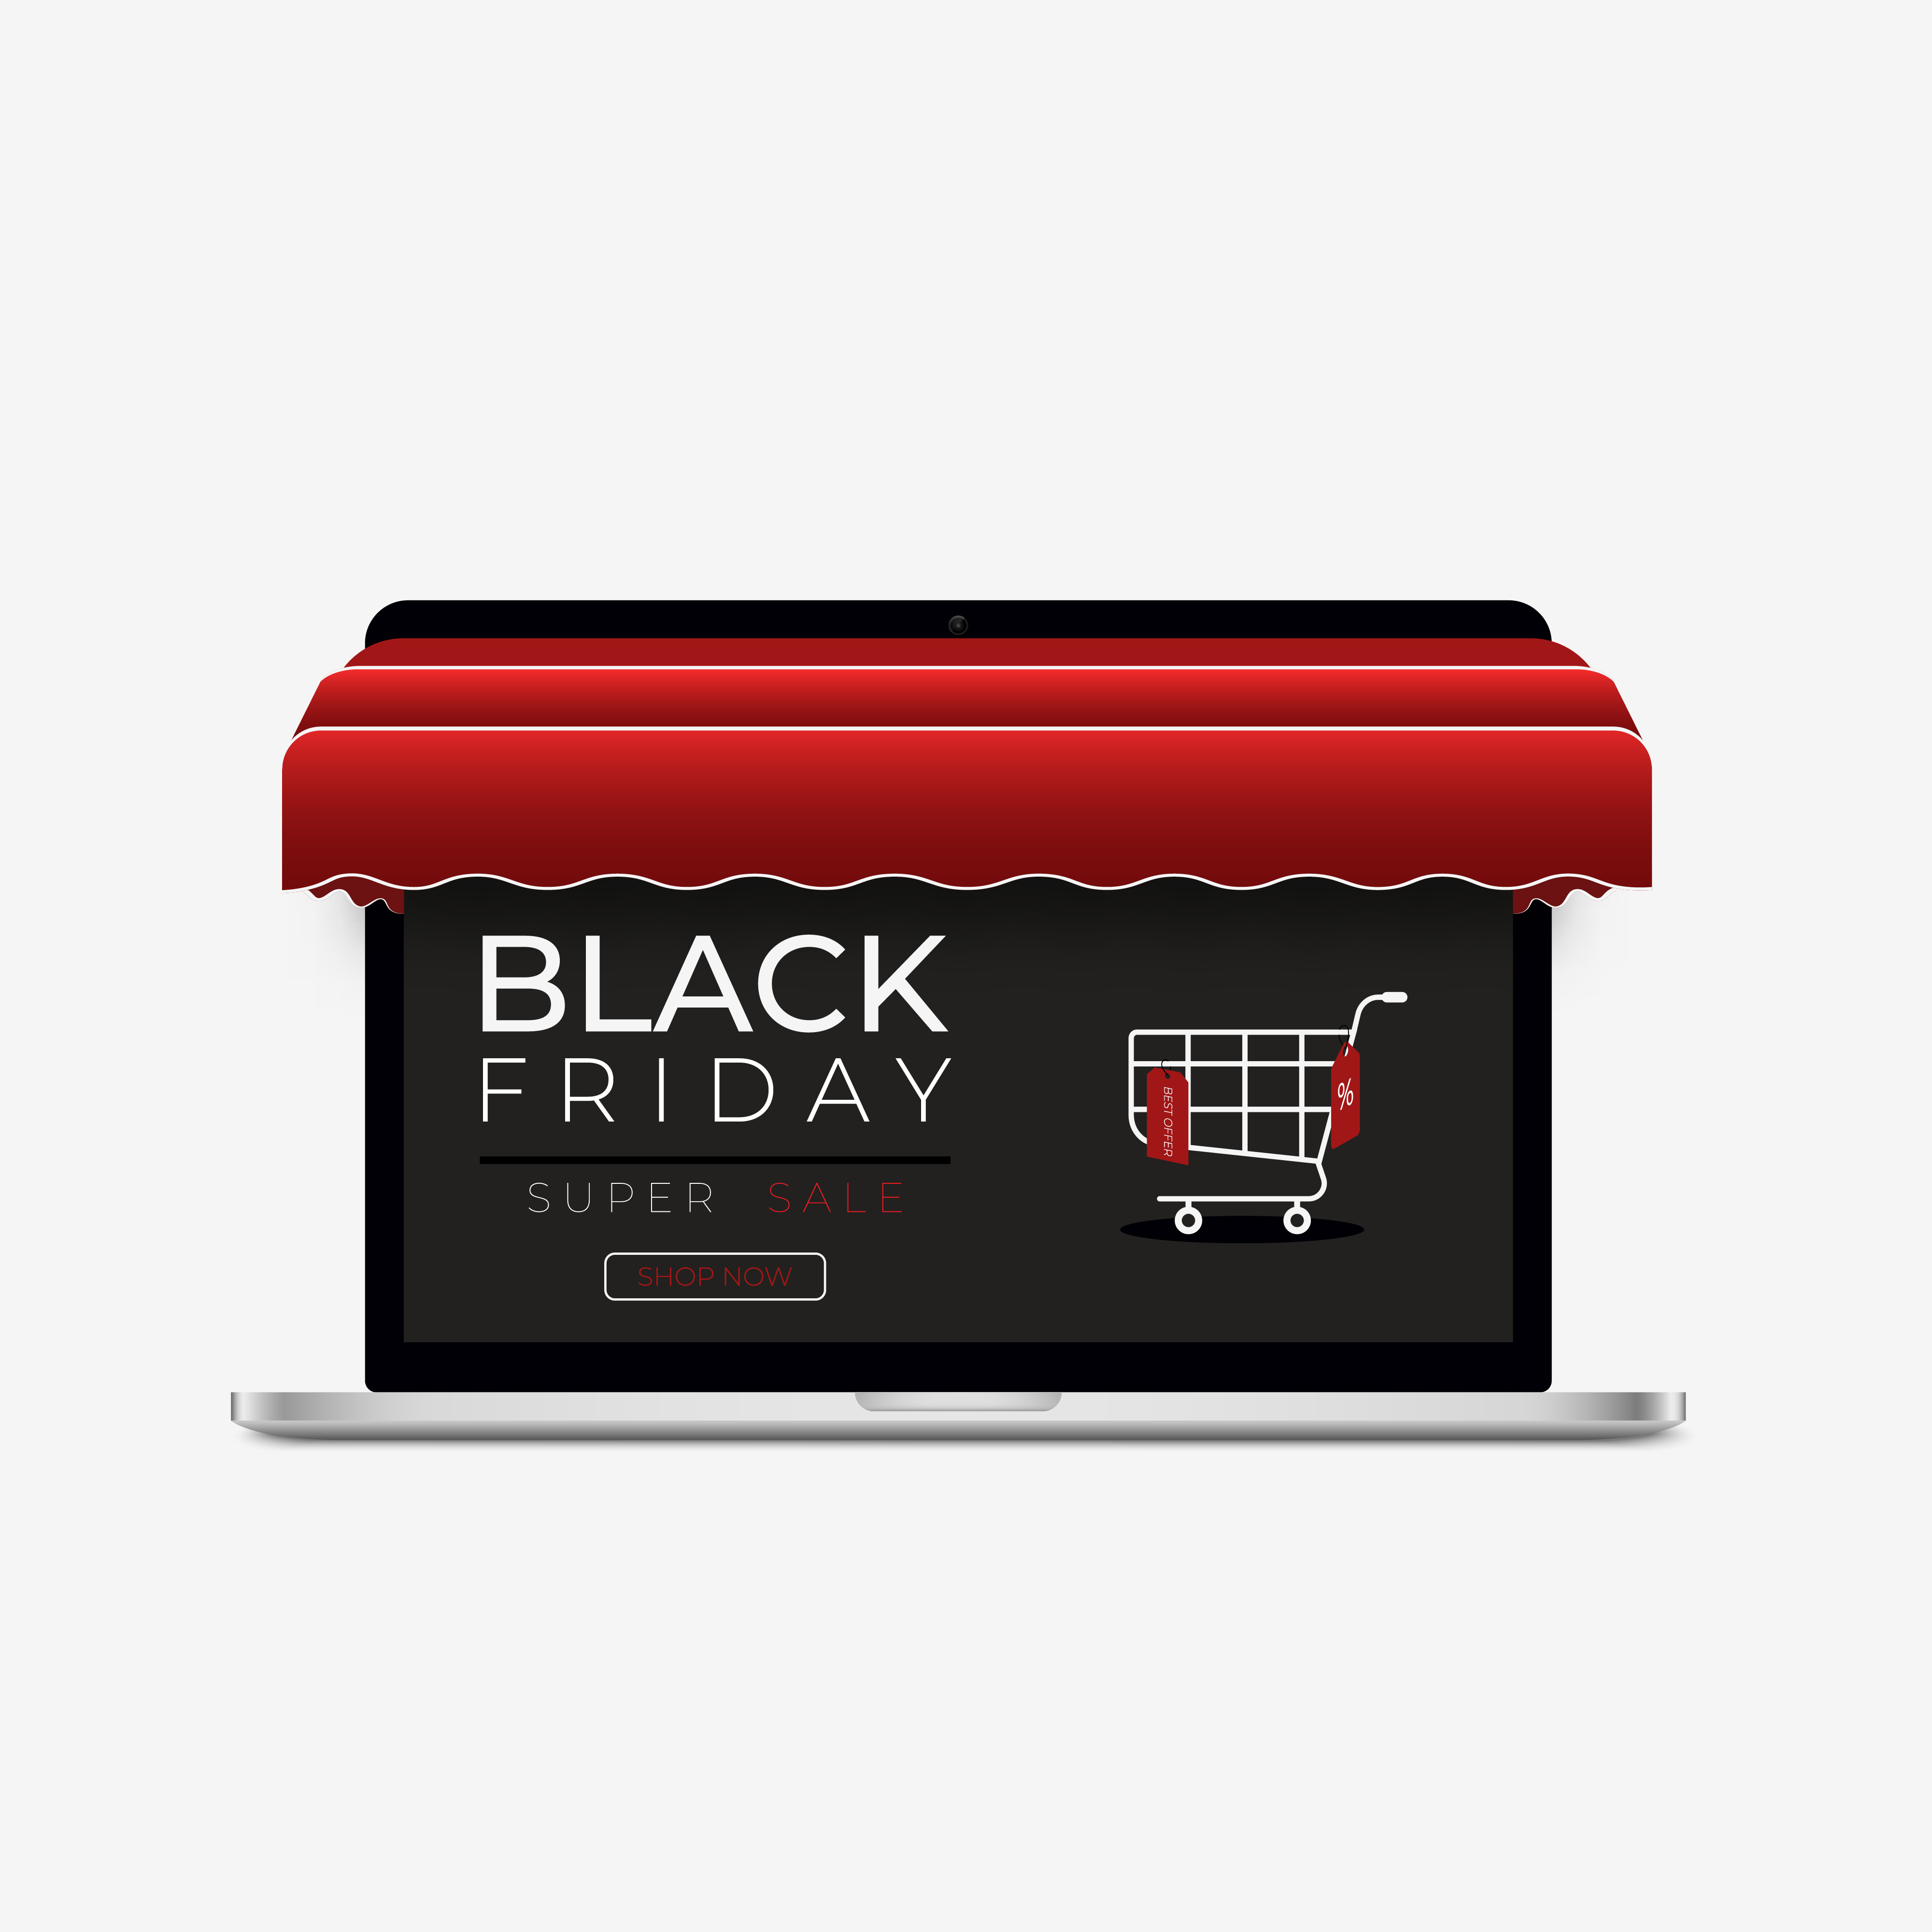 Black Friday Sale Online Even Though Black Friday 2020 Starts 11 27 We Are Seeing Some Black Friday Like Offers Early This Year Including Walmart And Dell Offering Sales On The First